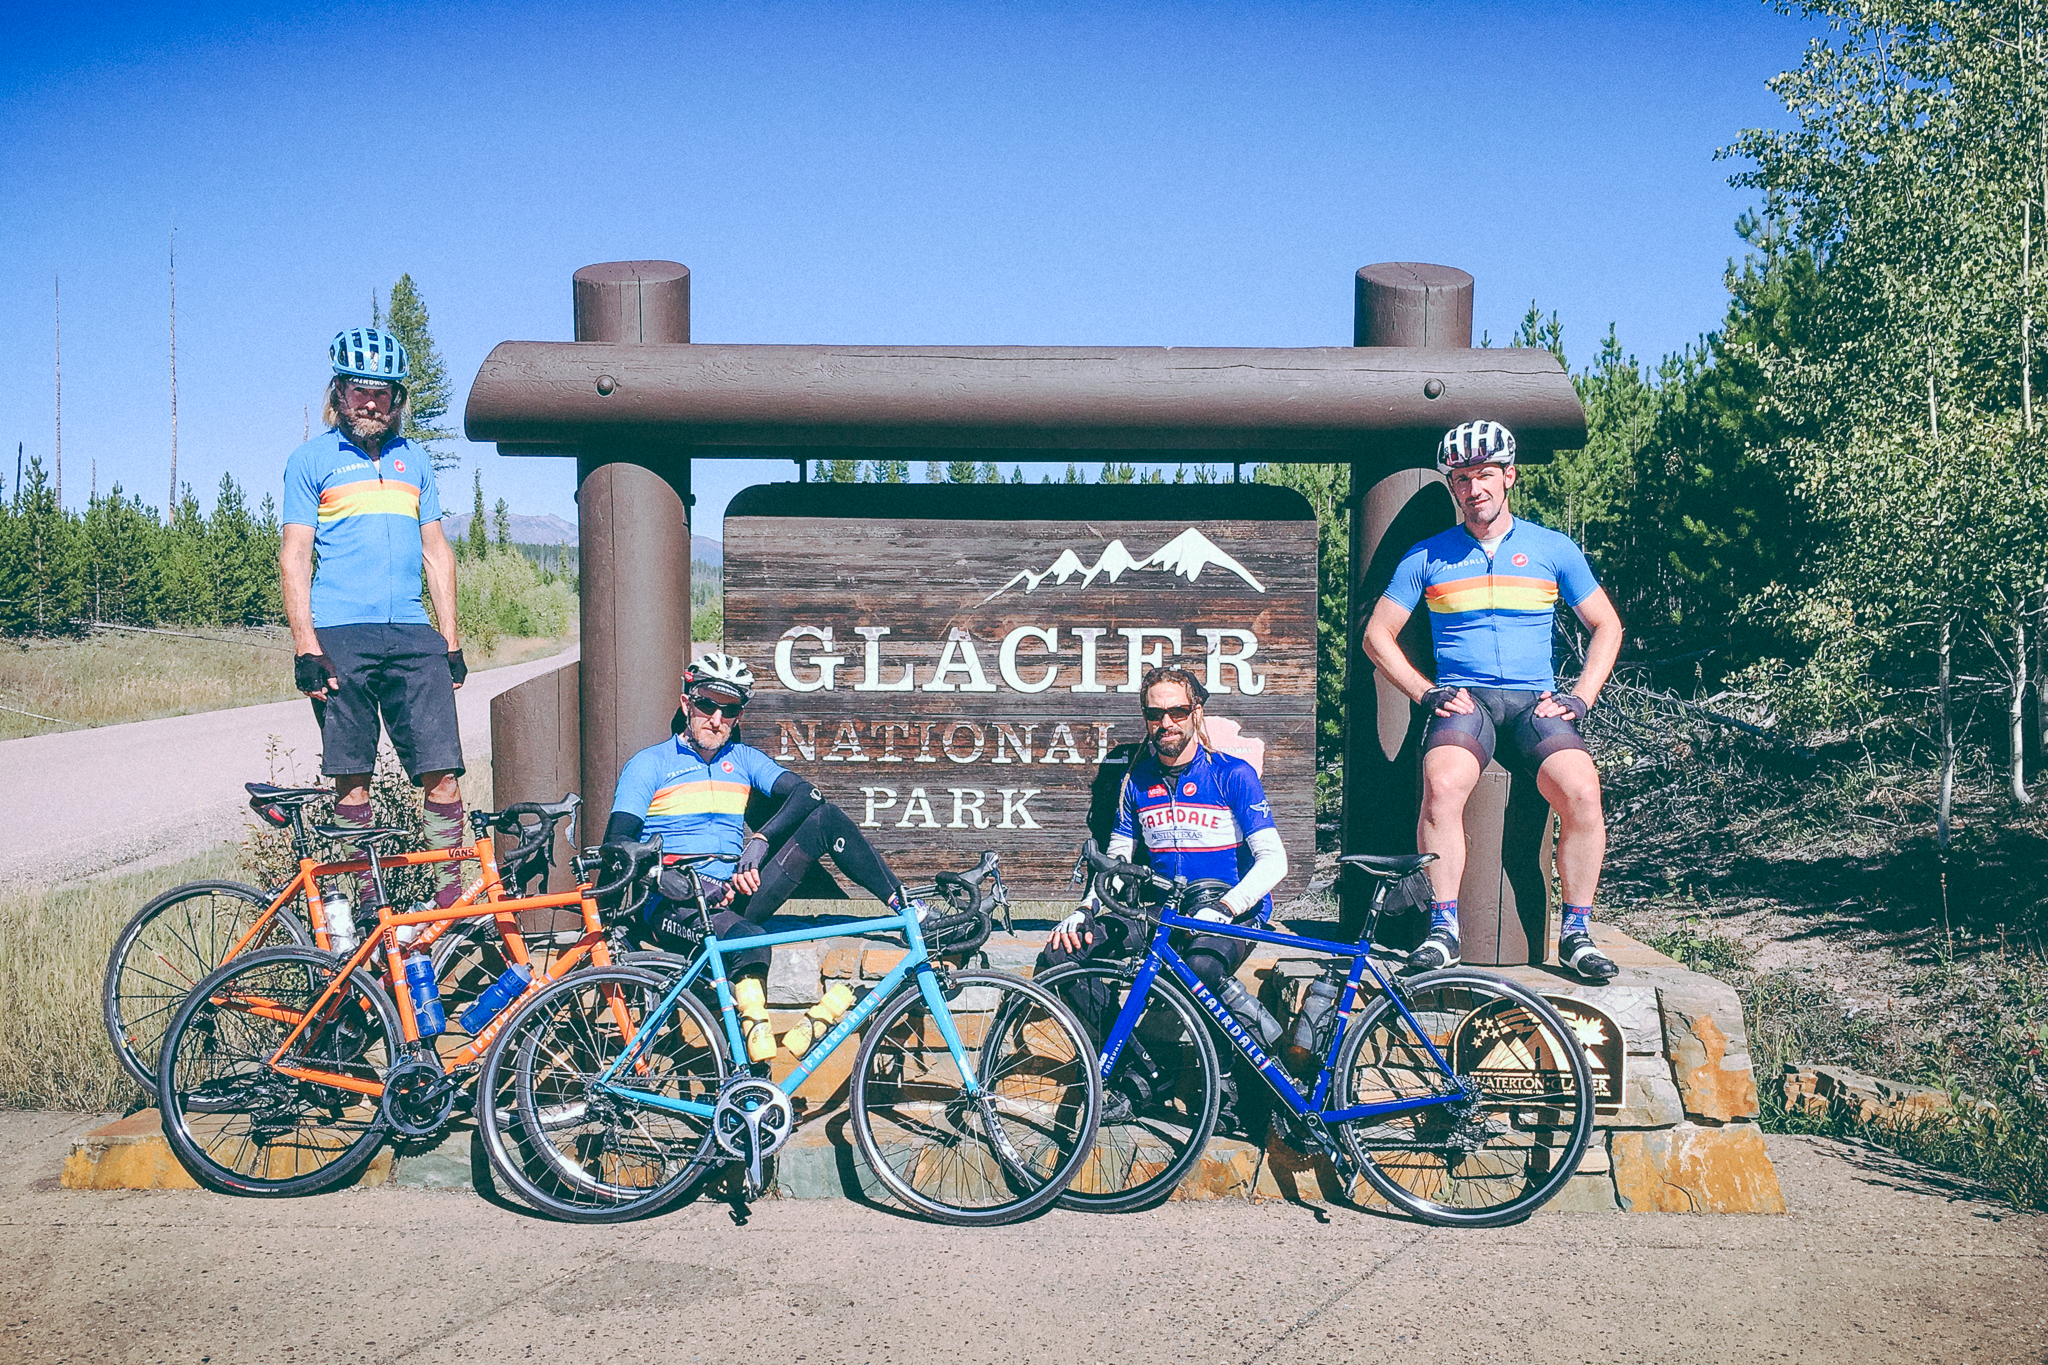 glacier-national-park-cycling-fairdale-1546